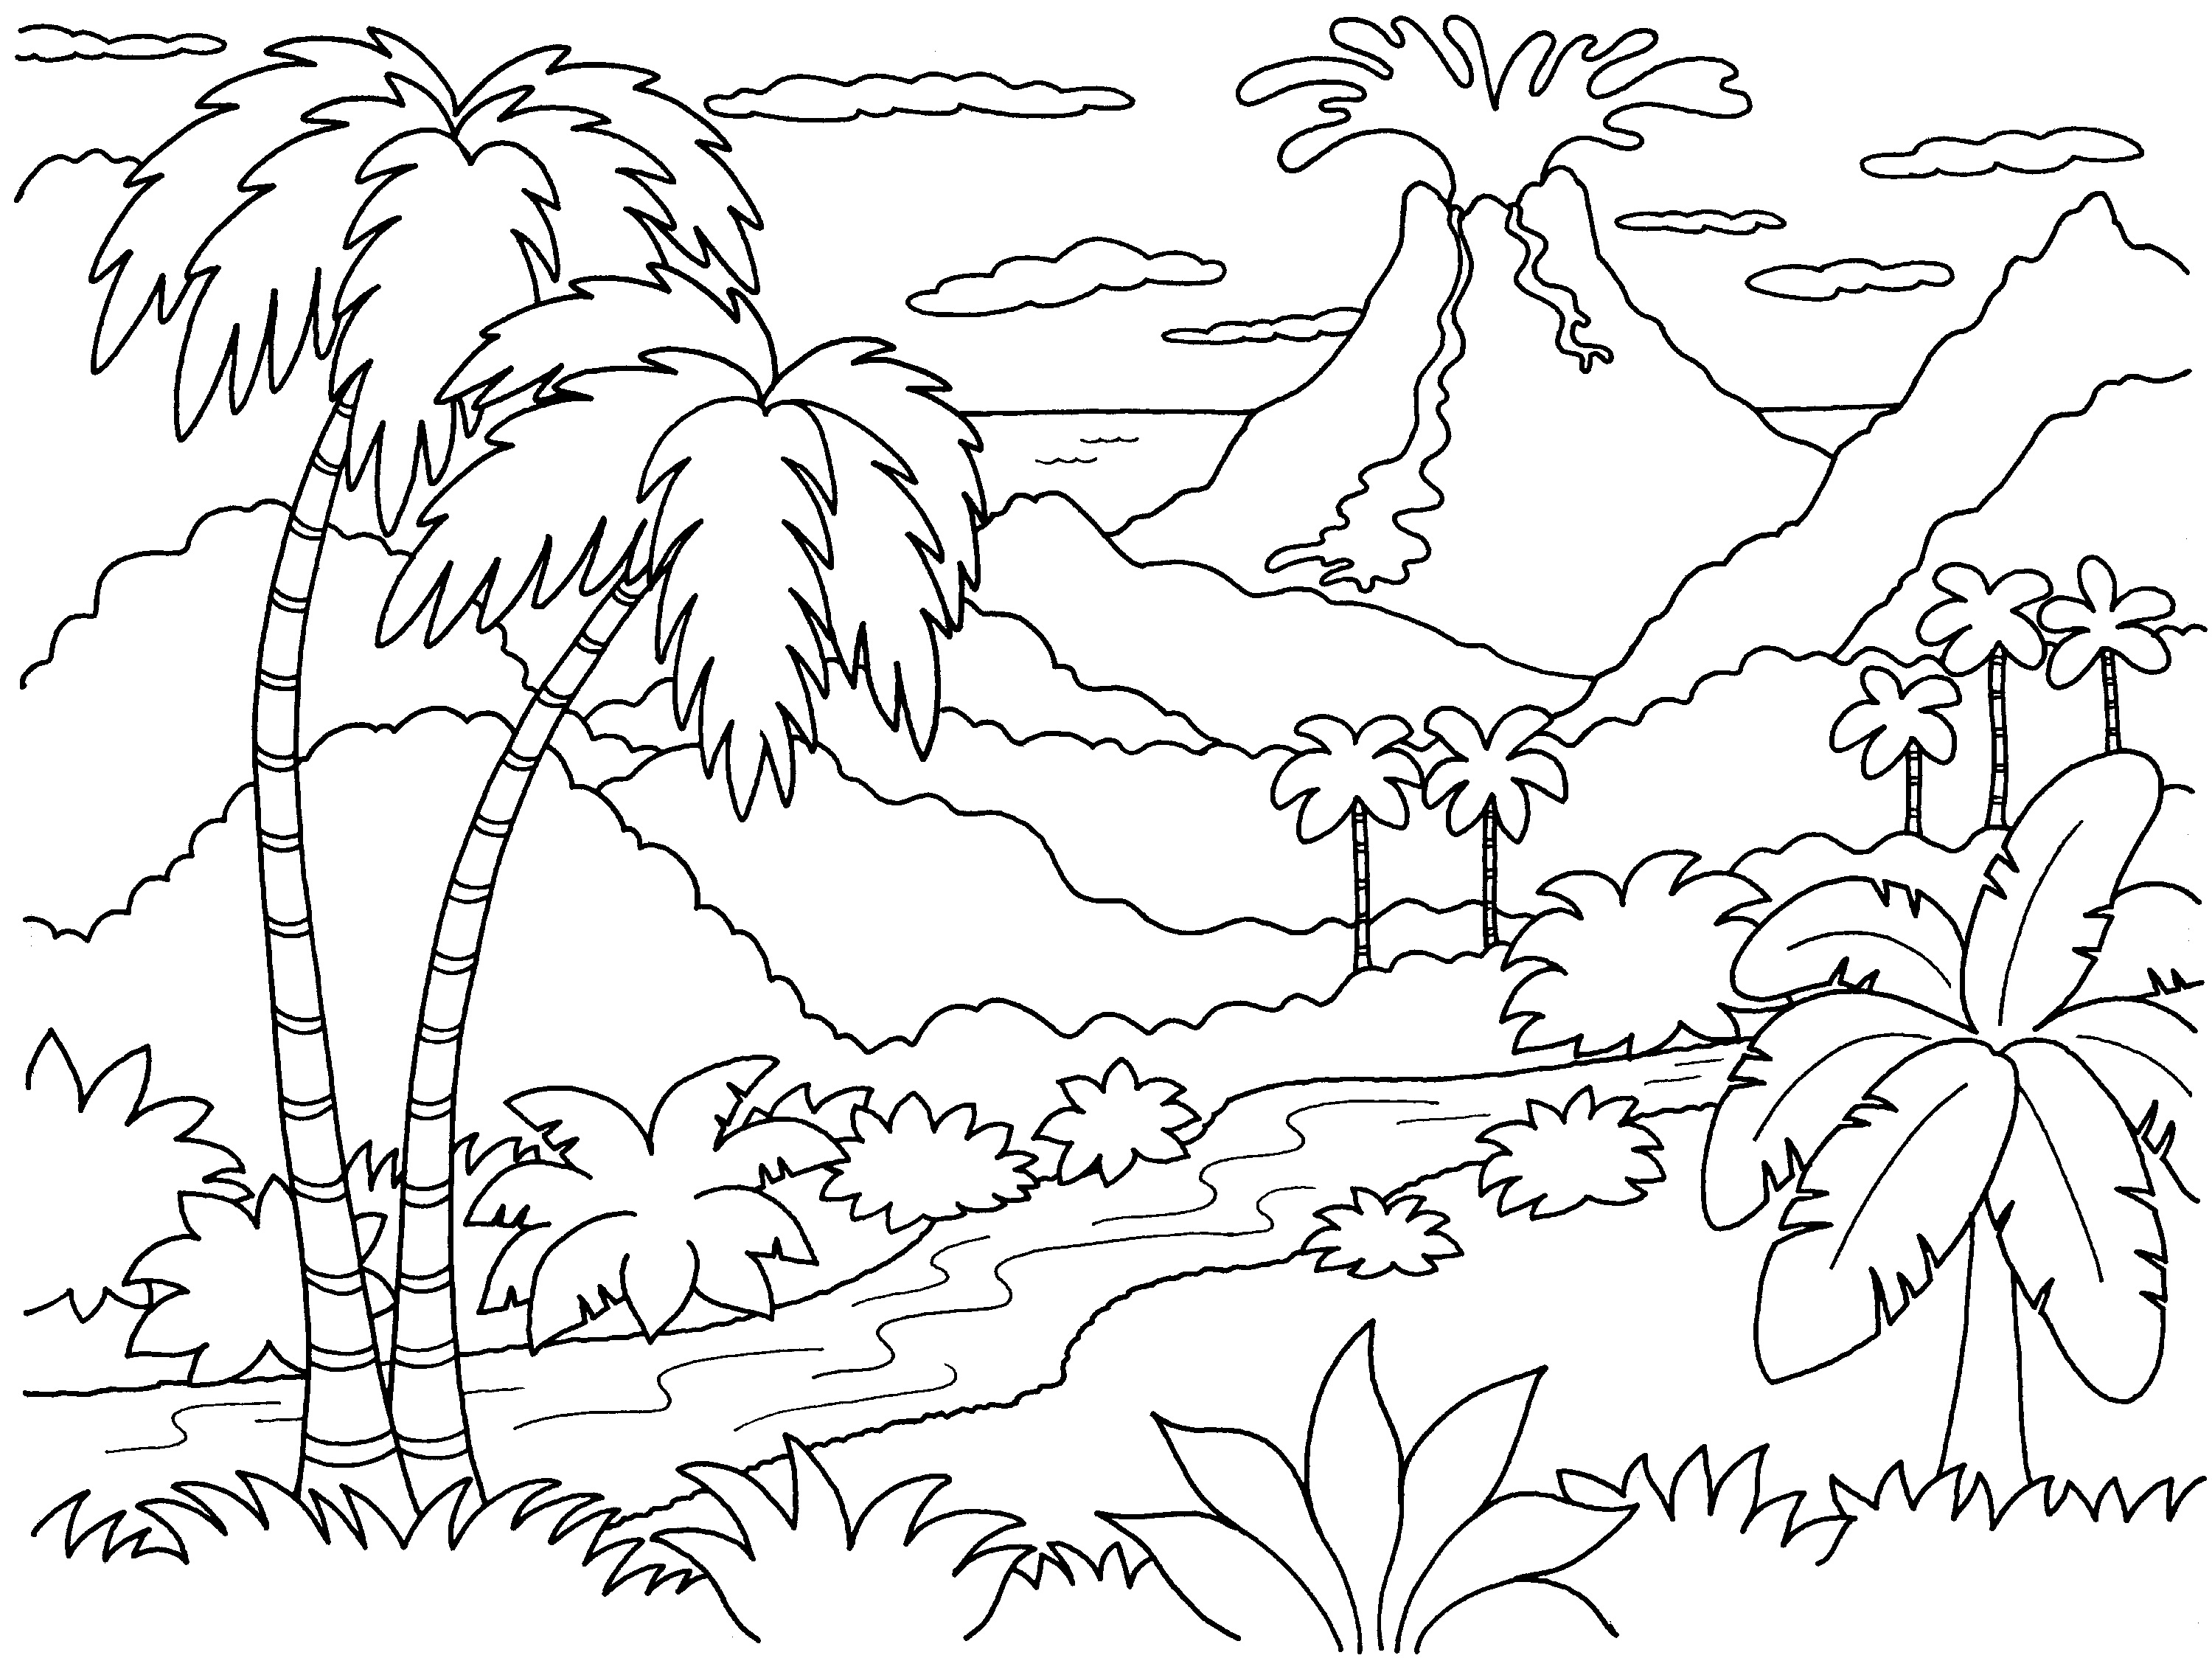 The Best Free Volcano Drawing Images Download From 401